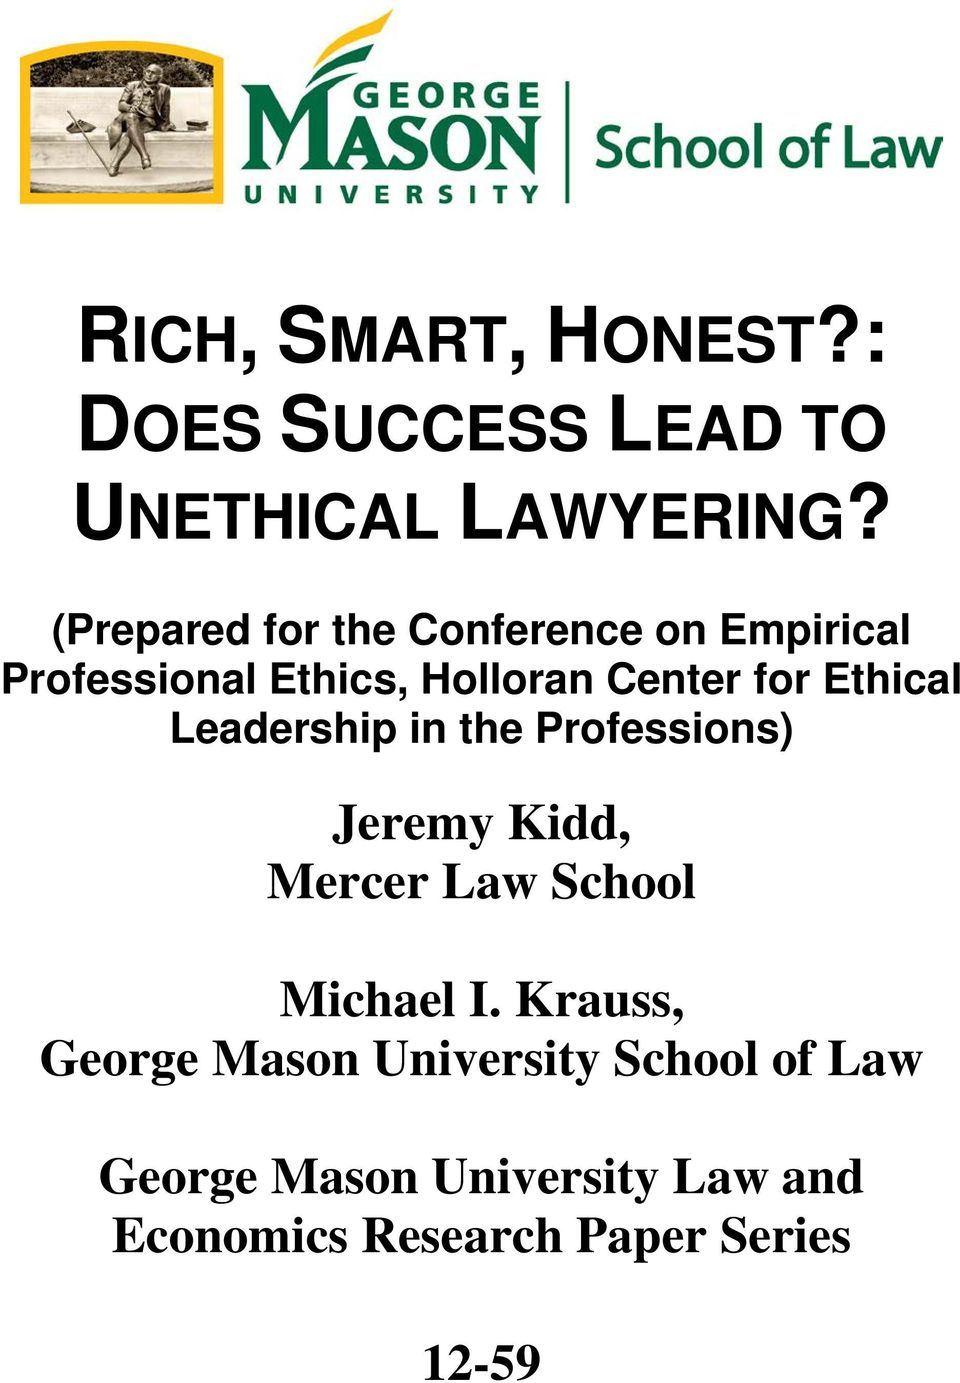 Ethical Leadership in the Professions) Jeremy Kidd, Mercer Law School Michael I.